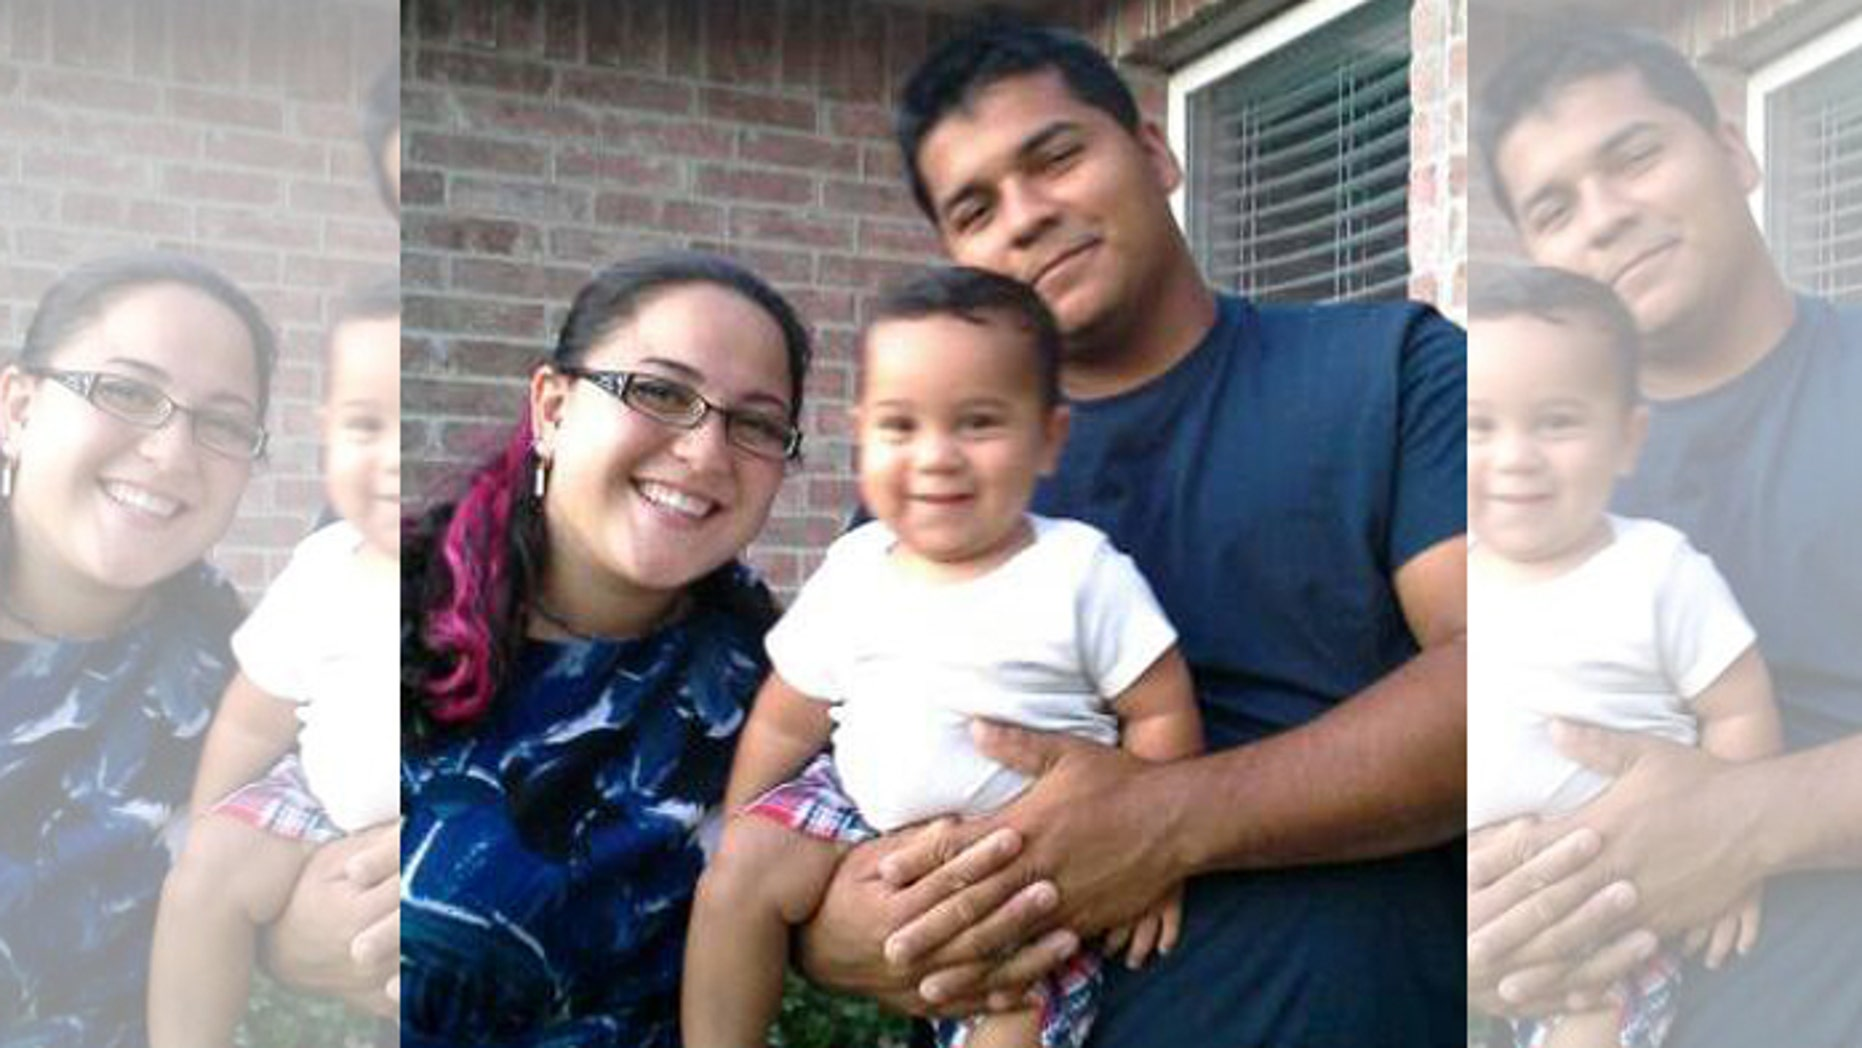 Marlise Munoz, left, her husband Erick, right, and their one-year-old child in Aug. 2013.